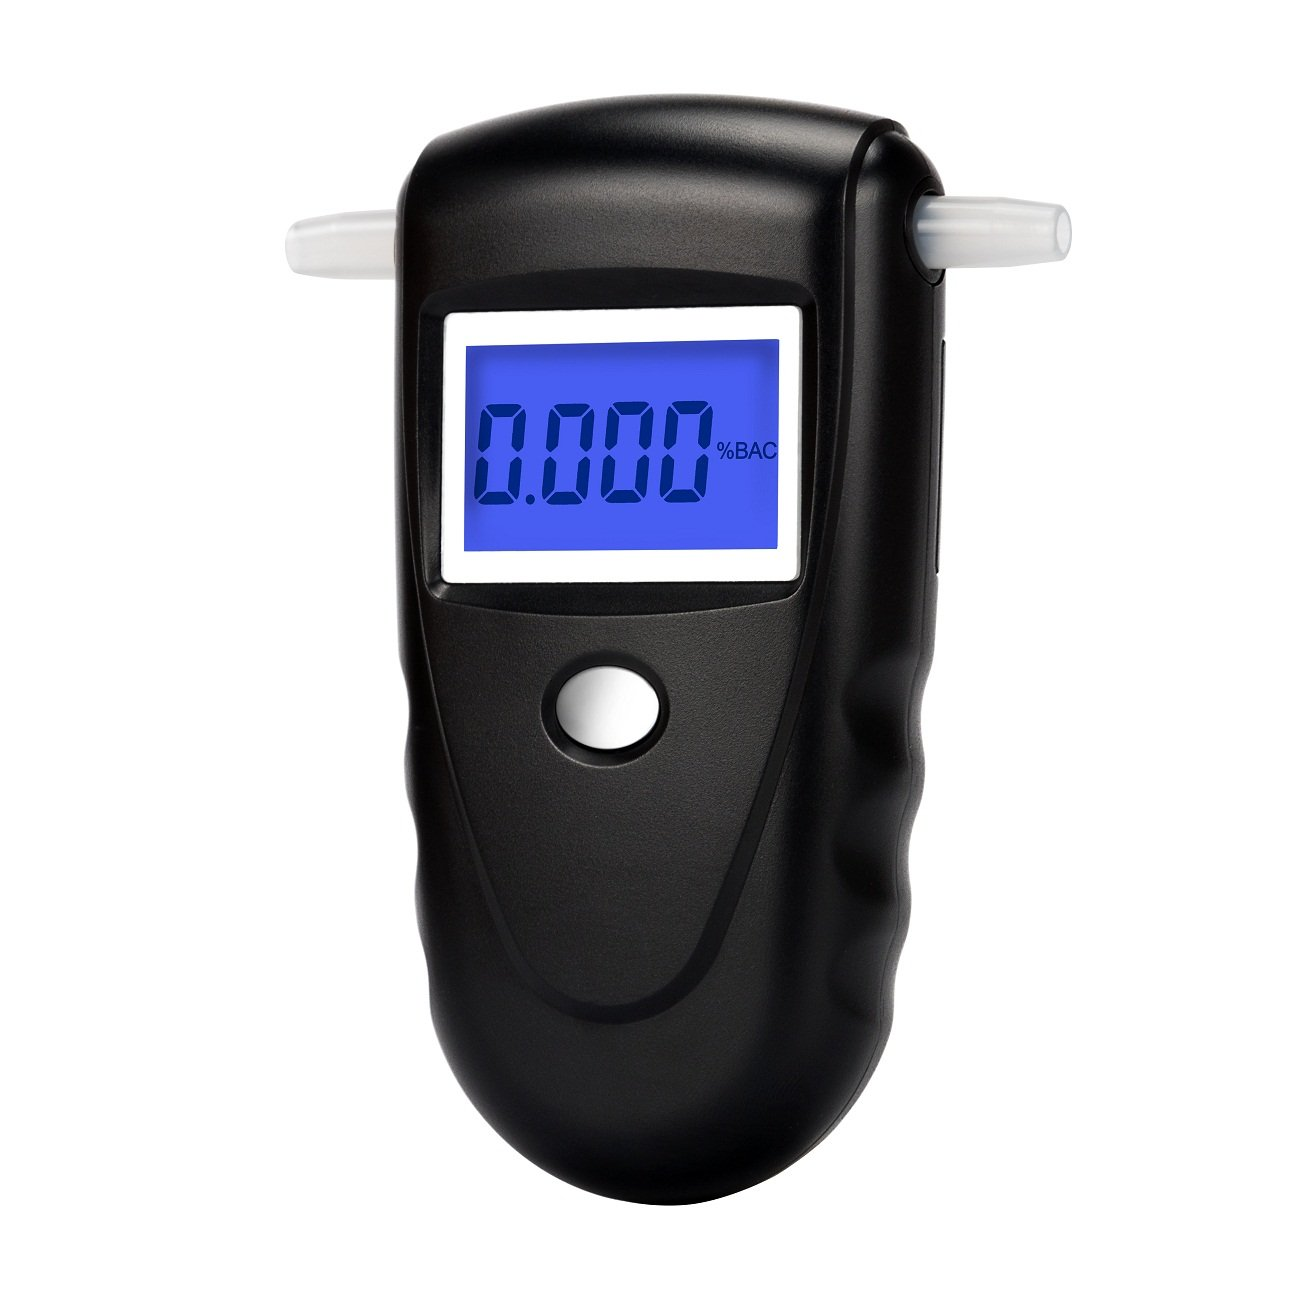 EEK-Brand Breathalyzer Professional Grade Portable Breath Digital Display Alcohol Tester with Extra 10 Mouthpiece